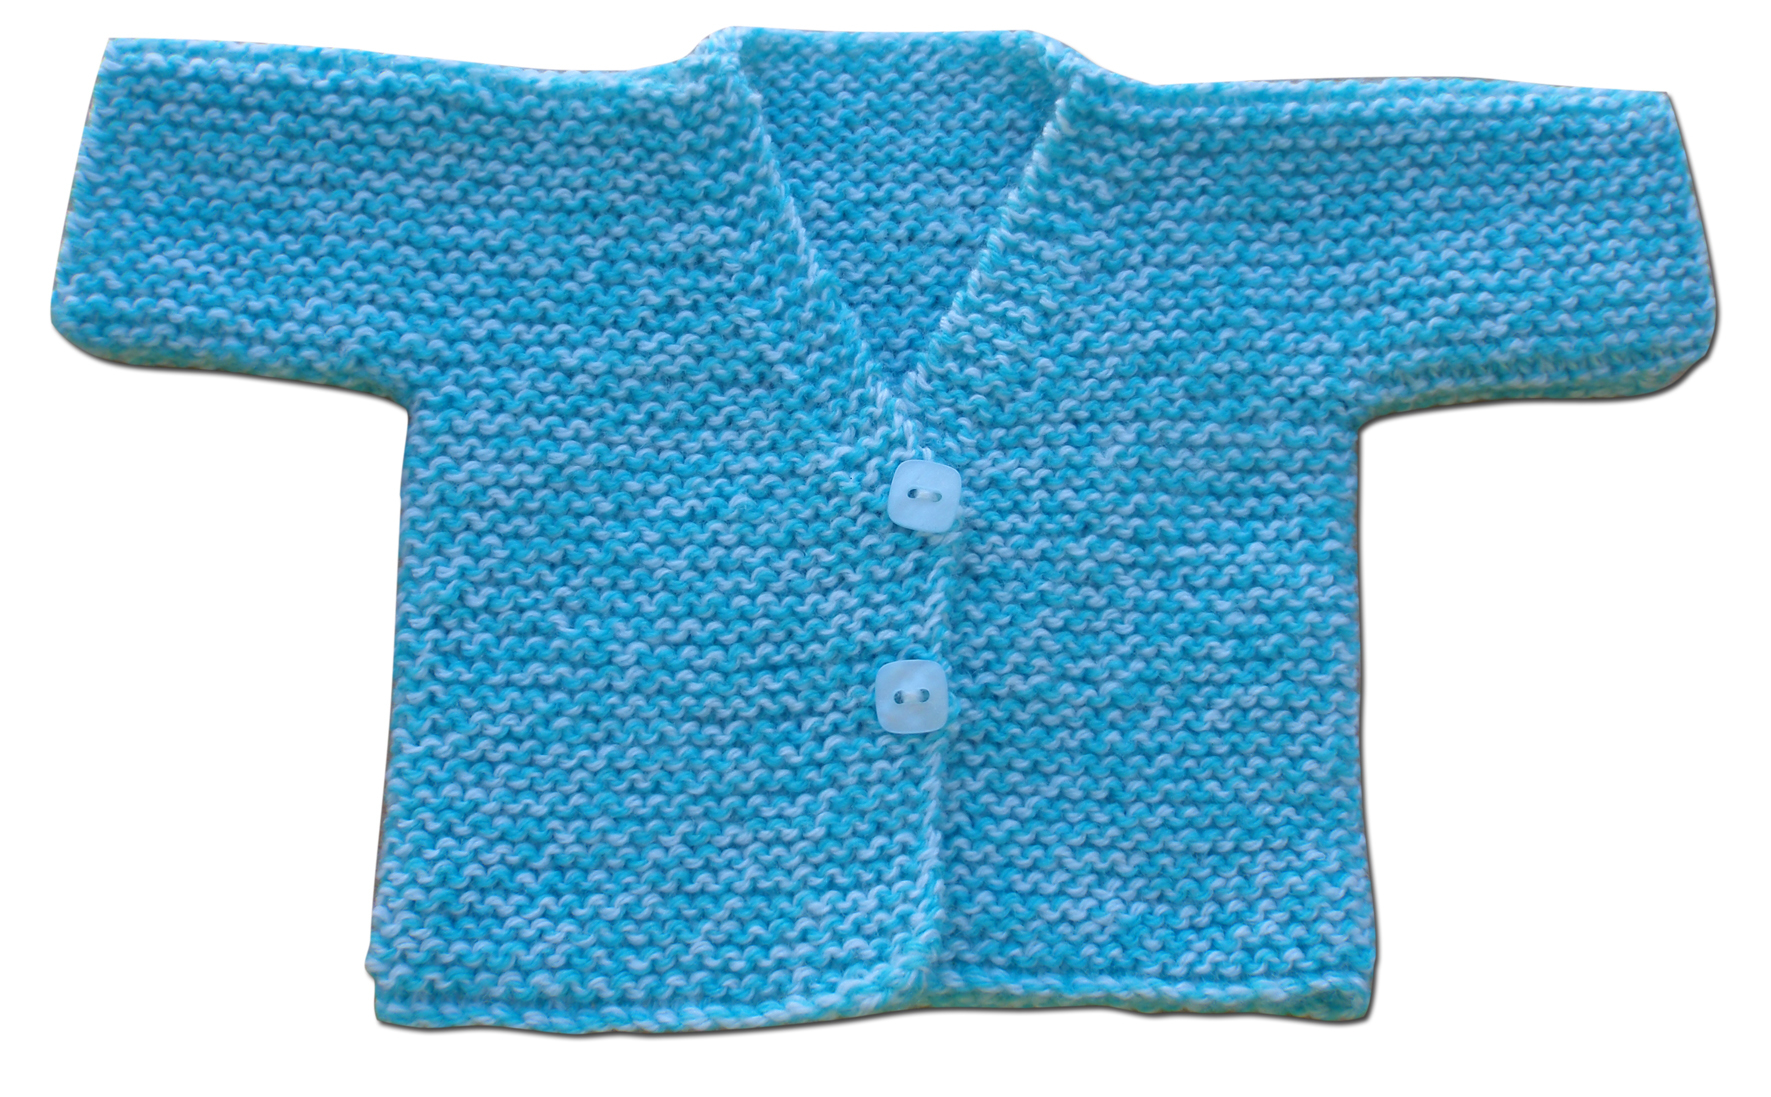 Premature Baby Knitting Patterns Help Our Babies